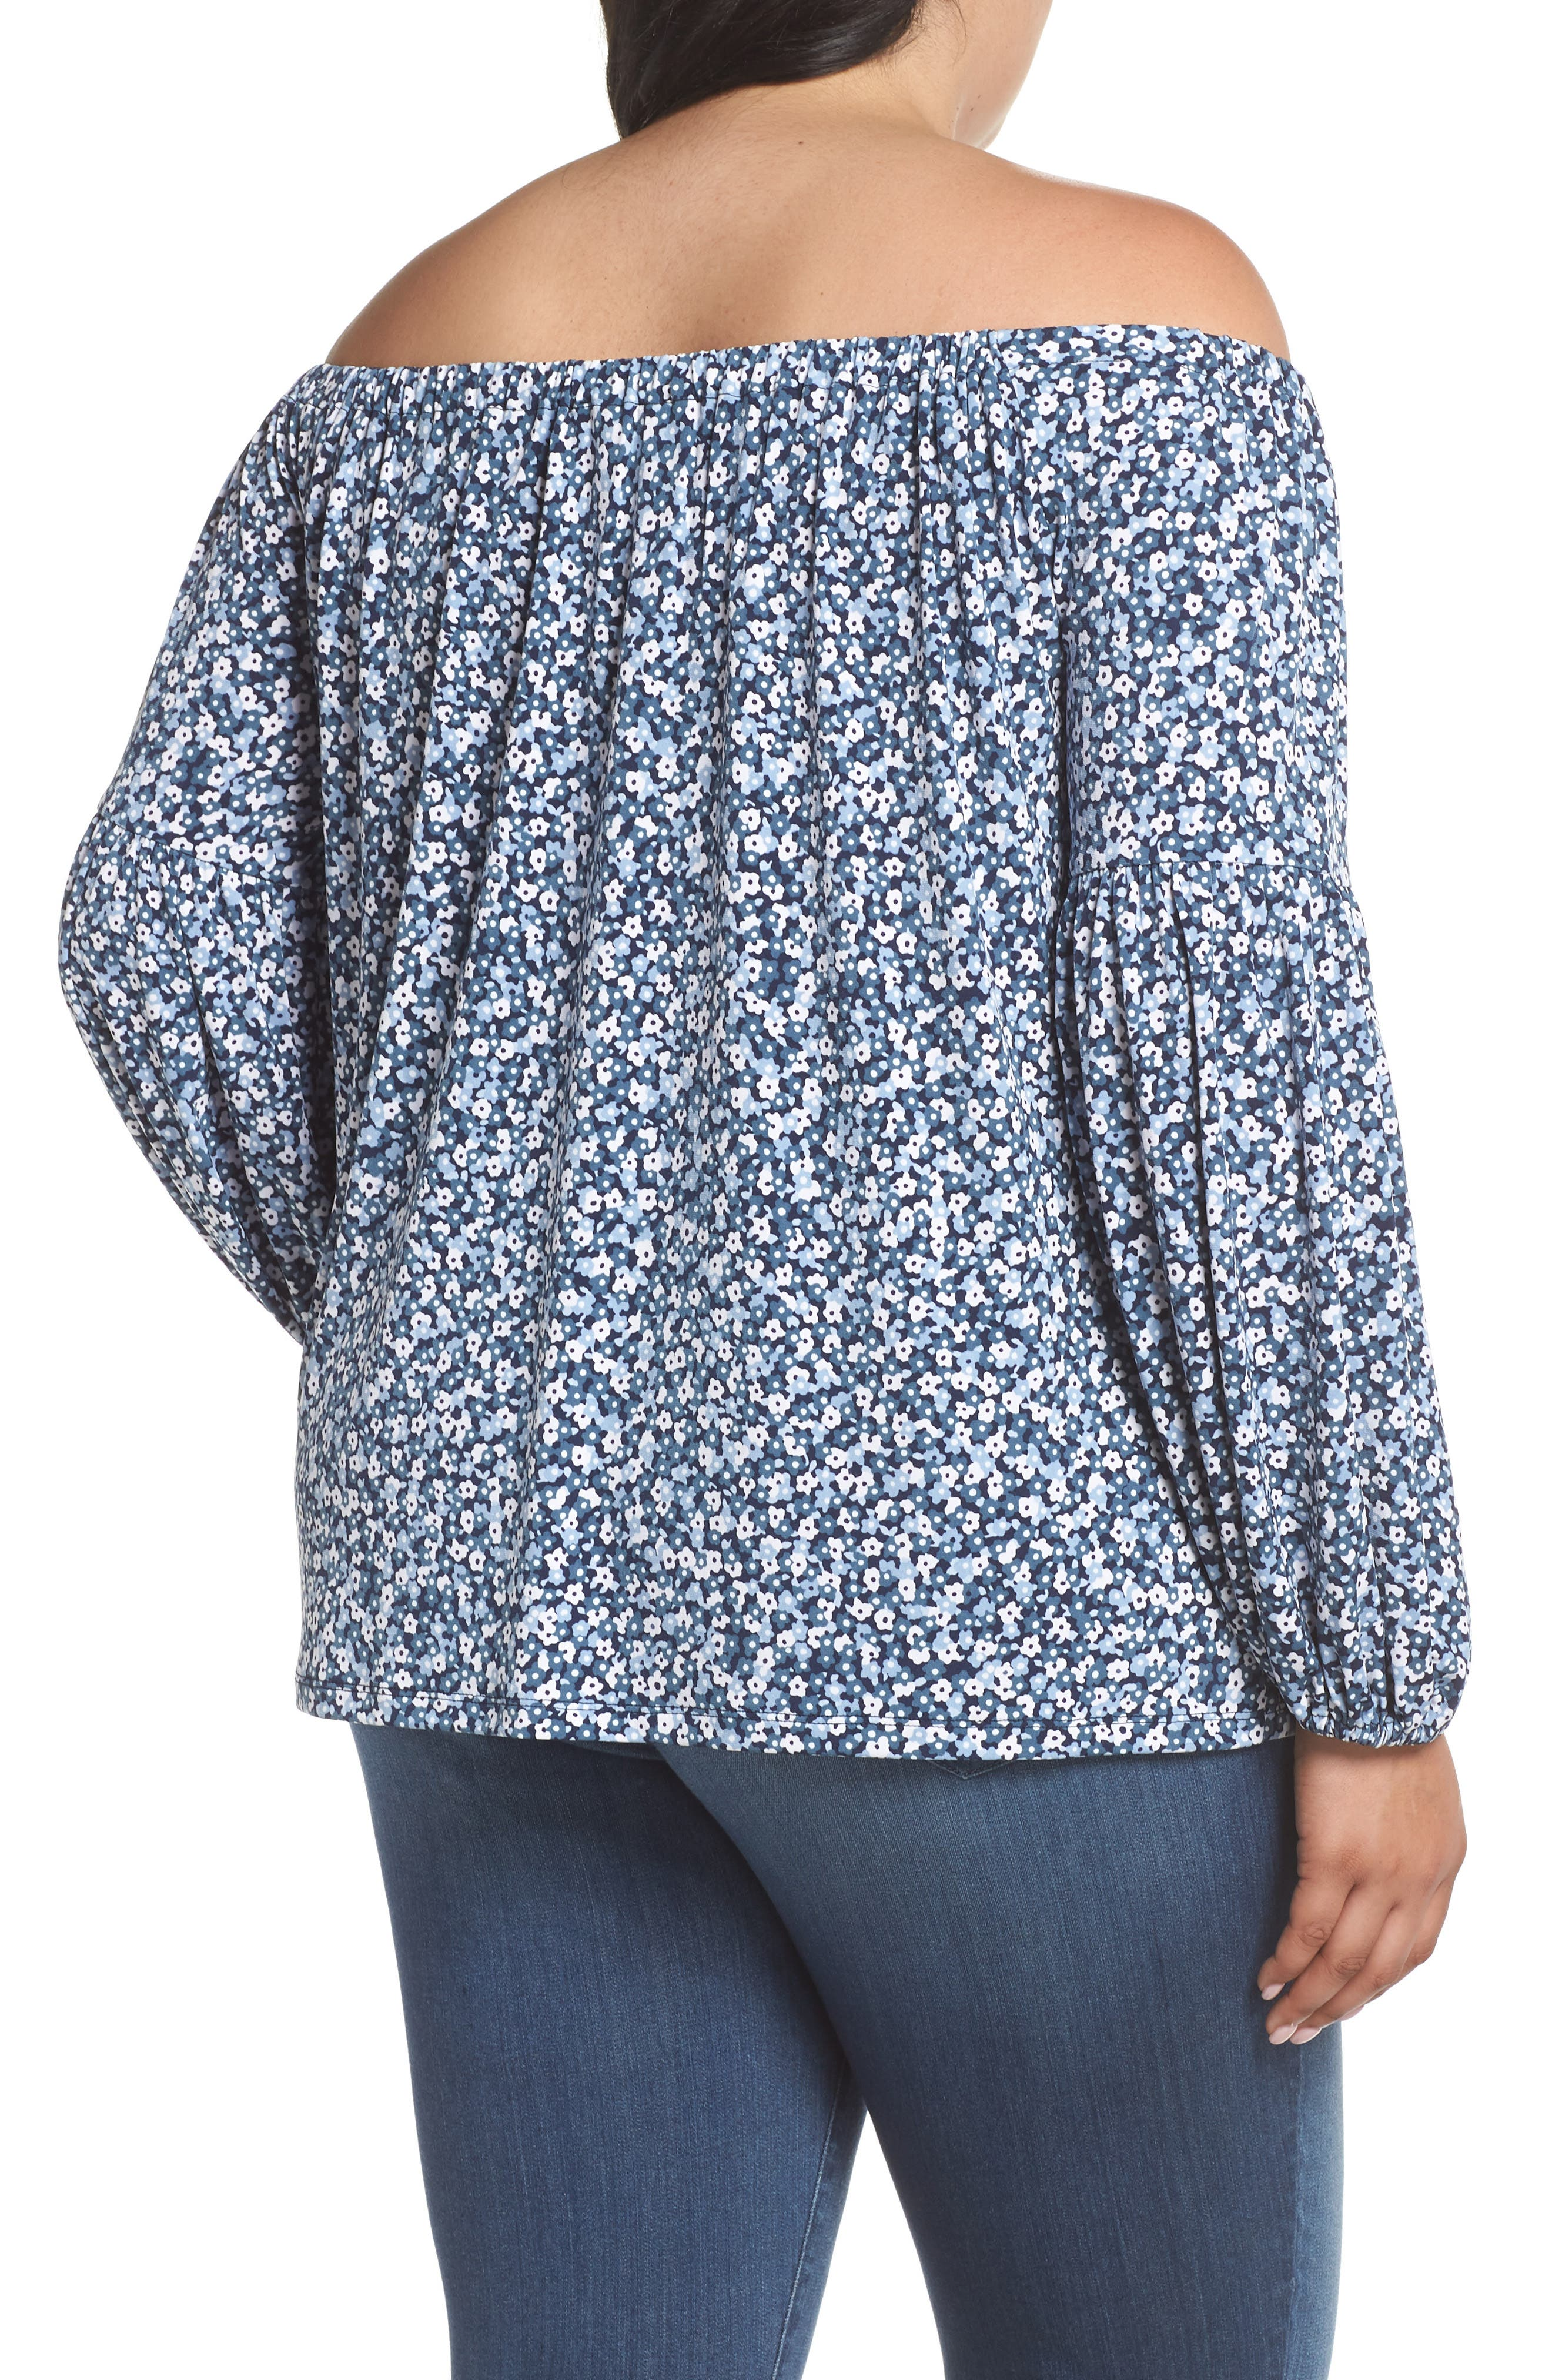 Collage Floral Off the Shoulder Top,                             Alternate thumbnail 2, color,                             True Navy/ Light Chambray